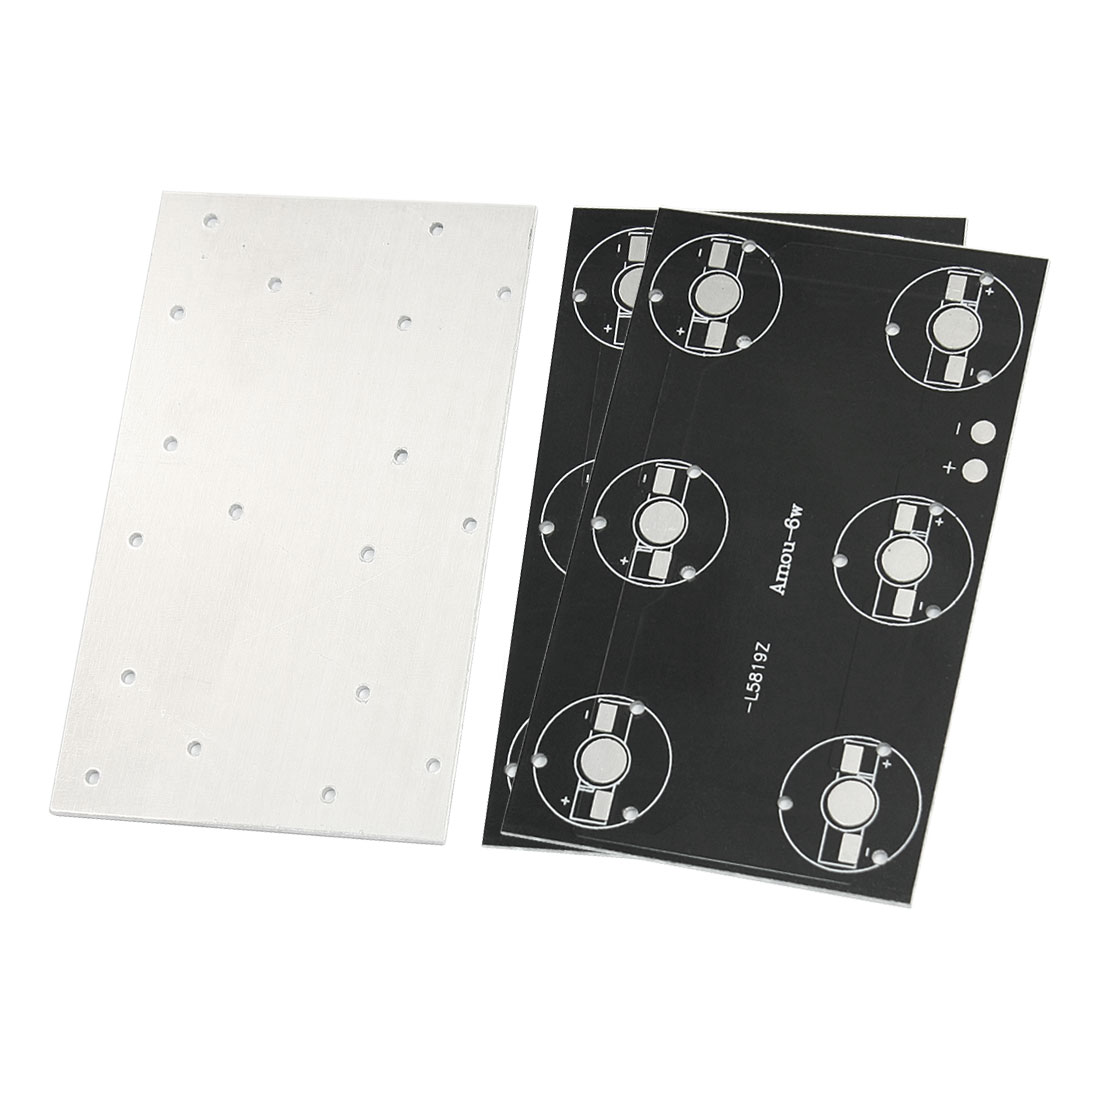 3 Pcs 100mm x 60mm Rectangle Aluminum Base Plate PCB Circuit Board for 6 x 1W/3W High Power LEDs in Series